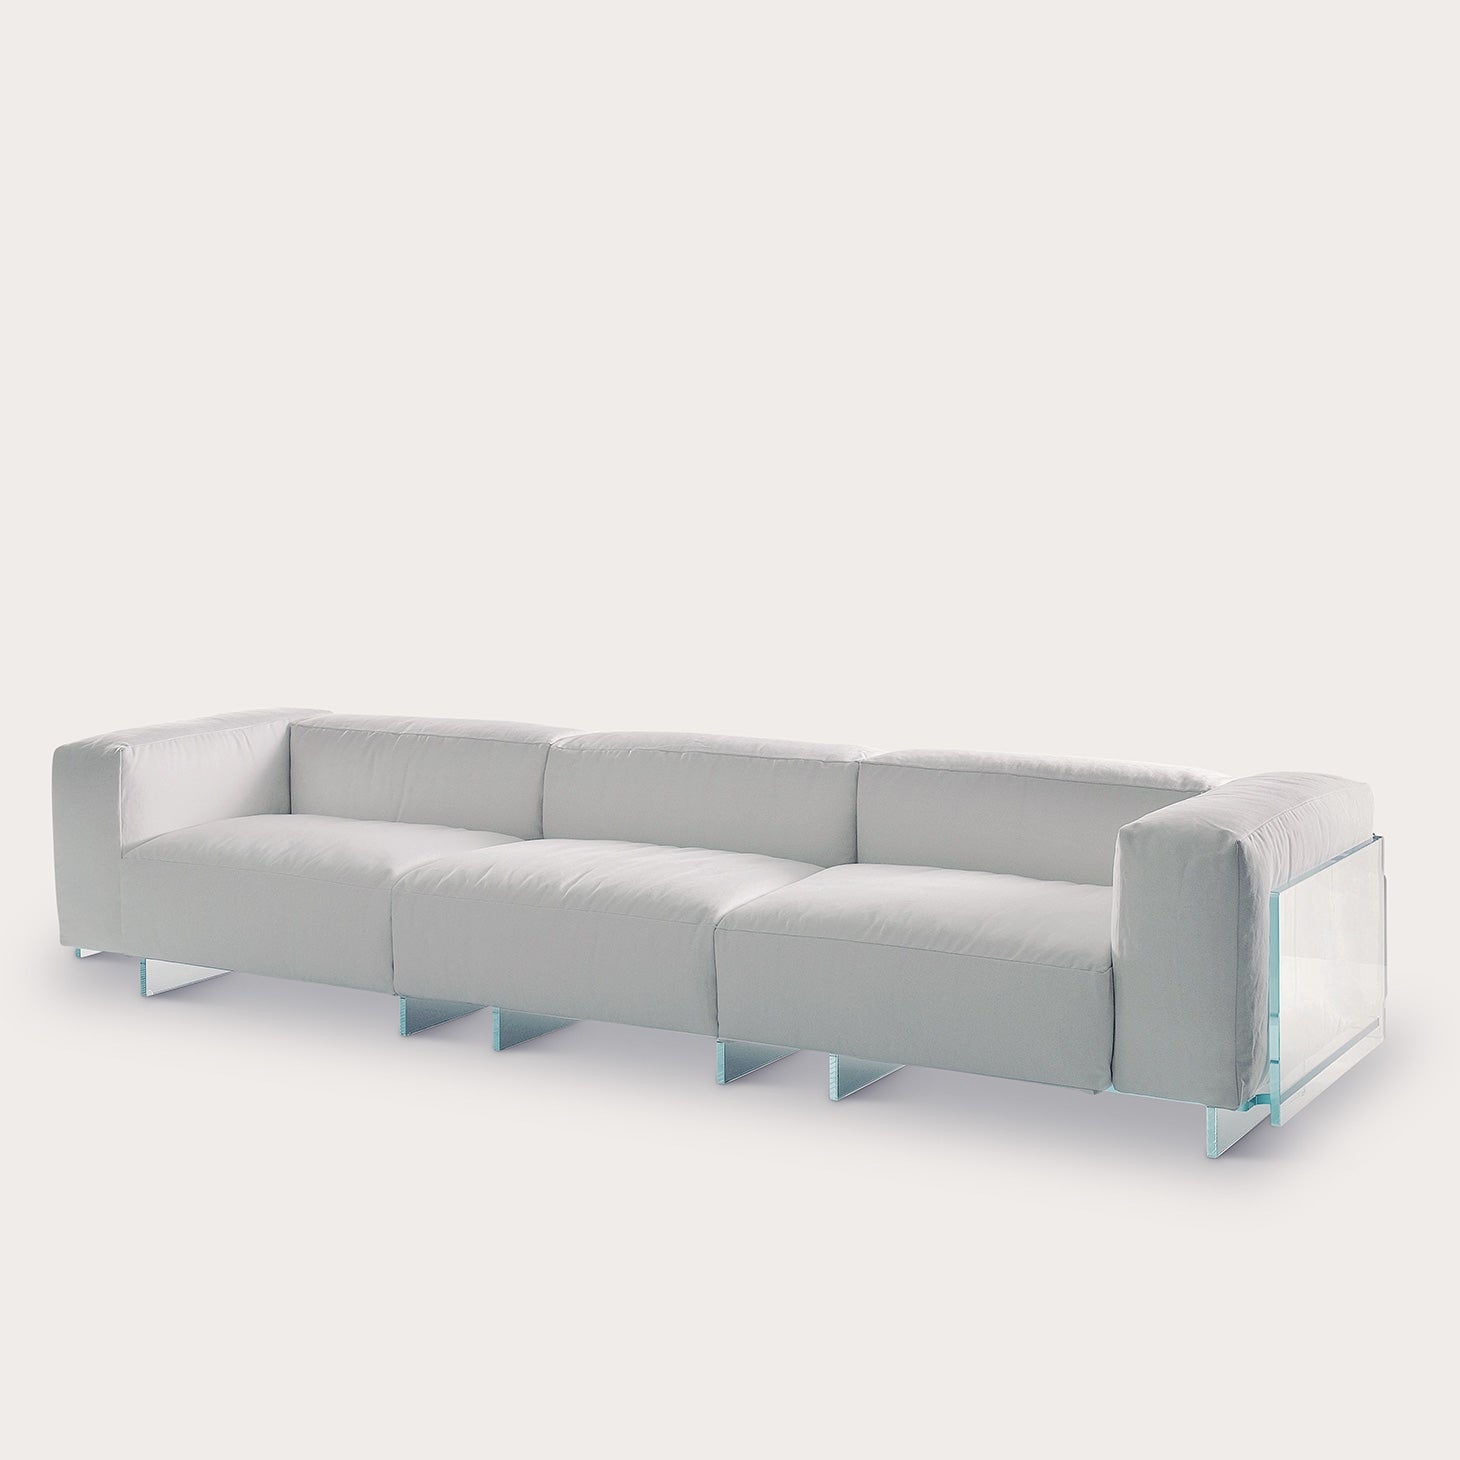 Crystal Lounge Seating Jean-Marie Massaud Designer Furniture Sku: 288-240-10020